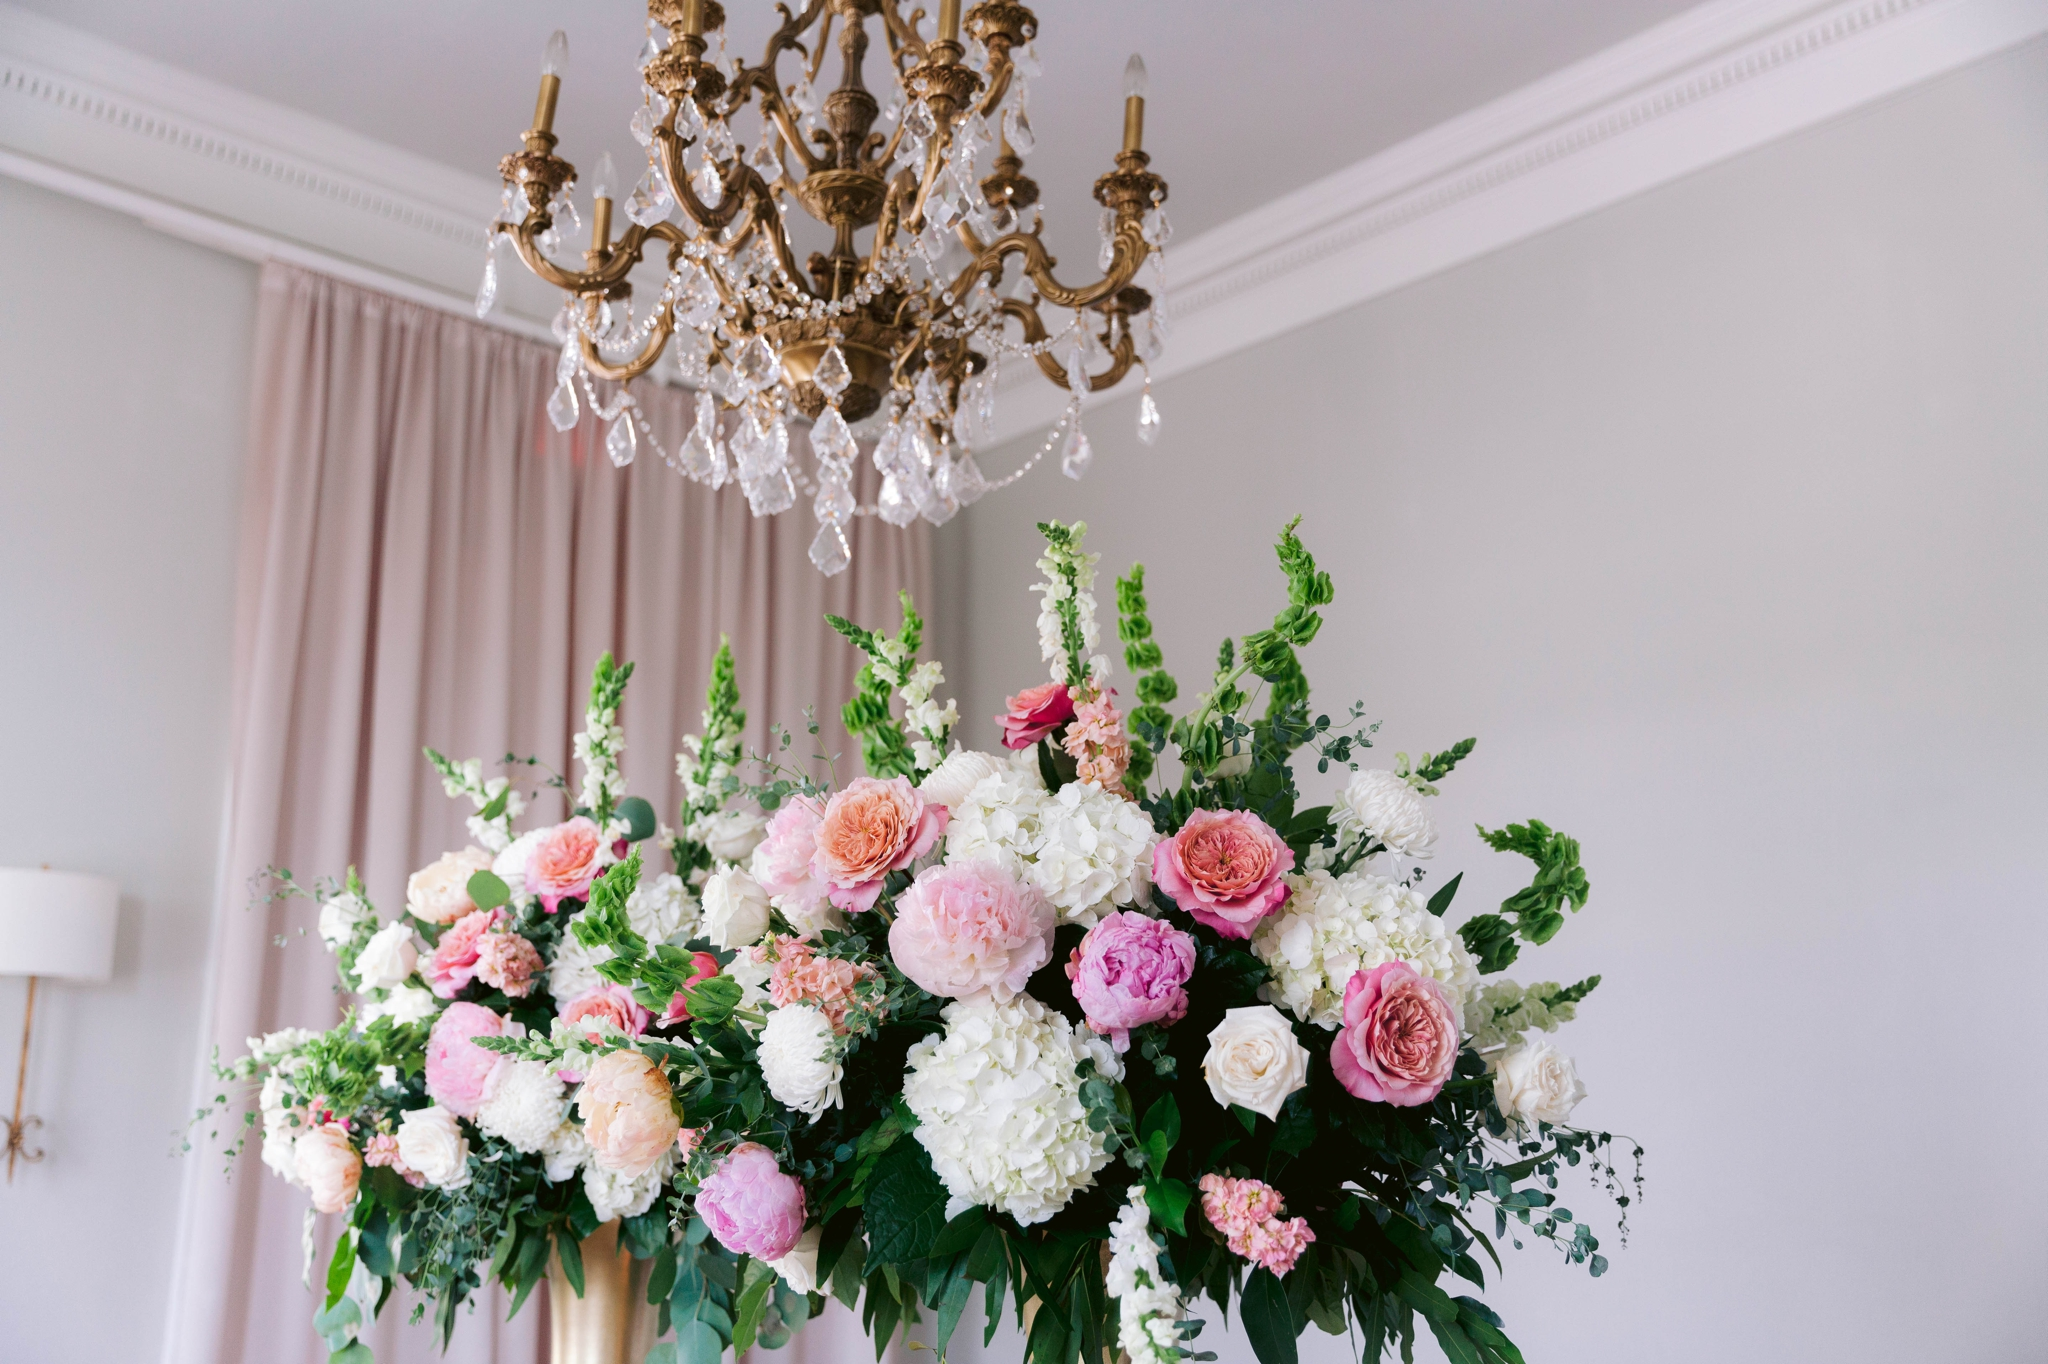 Reception Table with tall gold vases and draped flowers in blush and white - pink table cloth and gold table setting - Blush and Gold Wedding Inspiration - Honolulu, Oahu, Hawaii Wedding Photographer - Johanna Dye Photography - Martha Stewart Weddings - Style Me Pretty